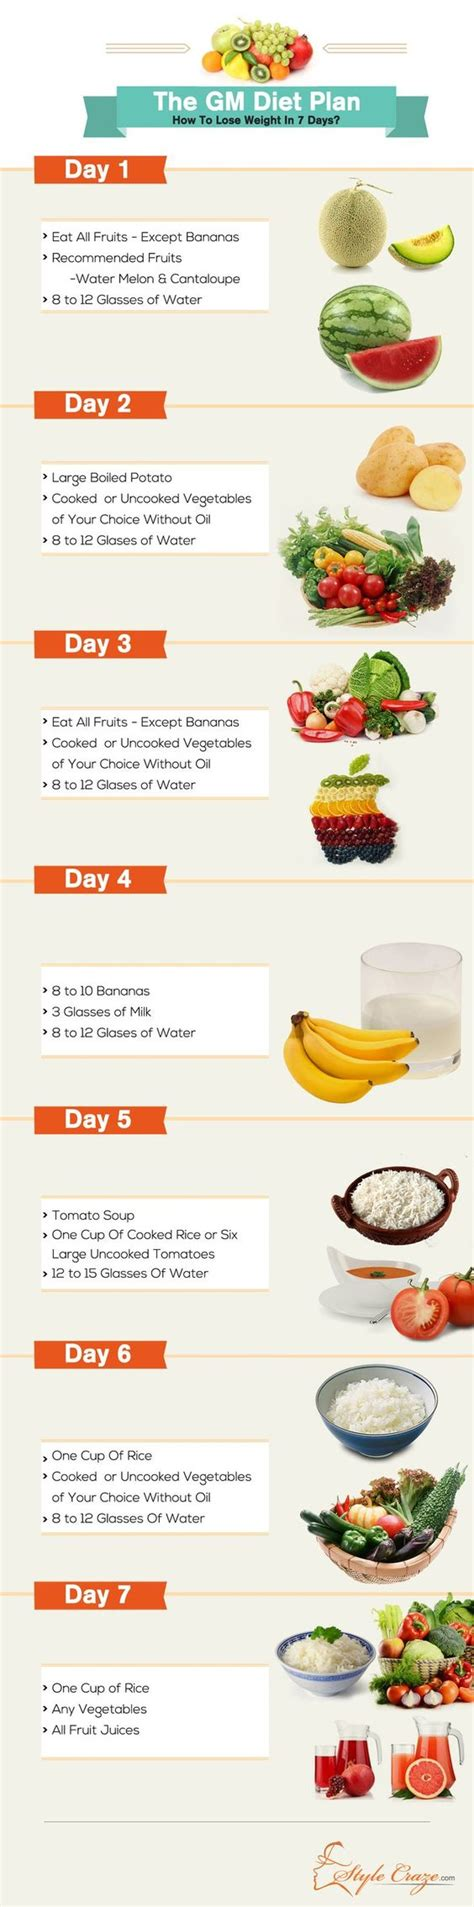 1 Week Detox Cleanse Plan by The Gm Diet Plan How To Lose Weight In Just 7 Days To